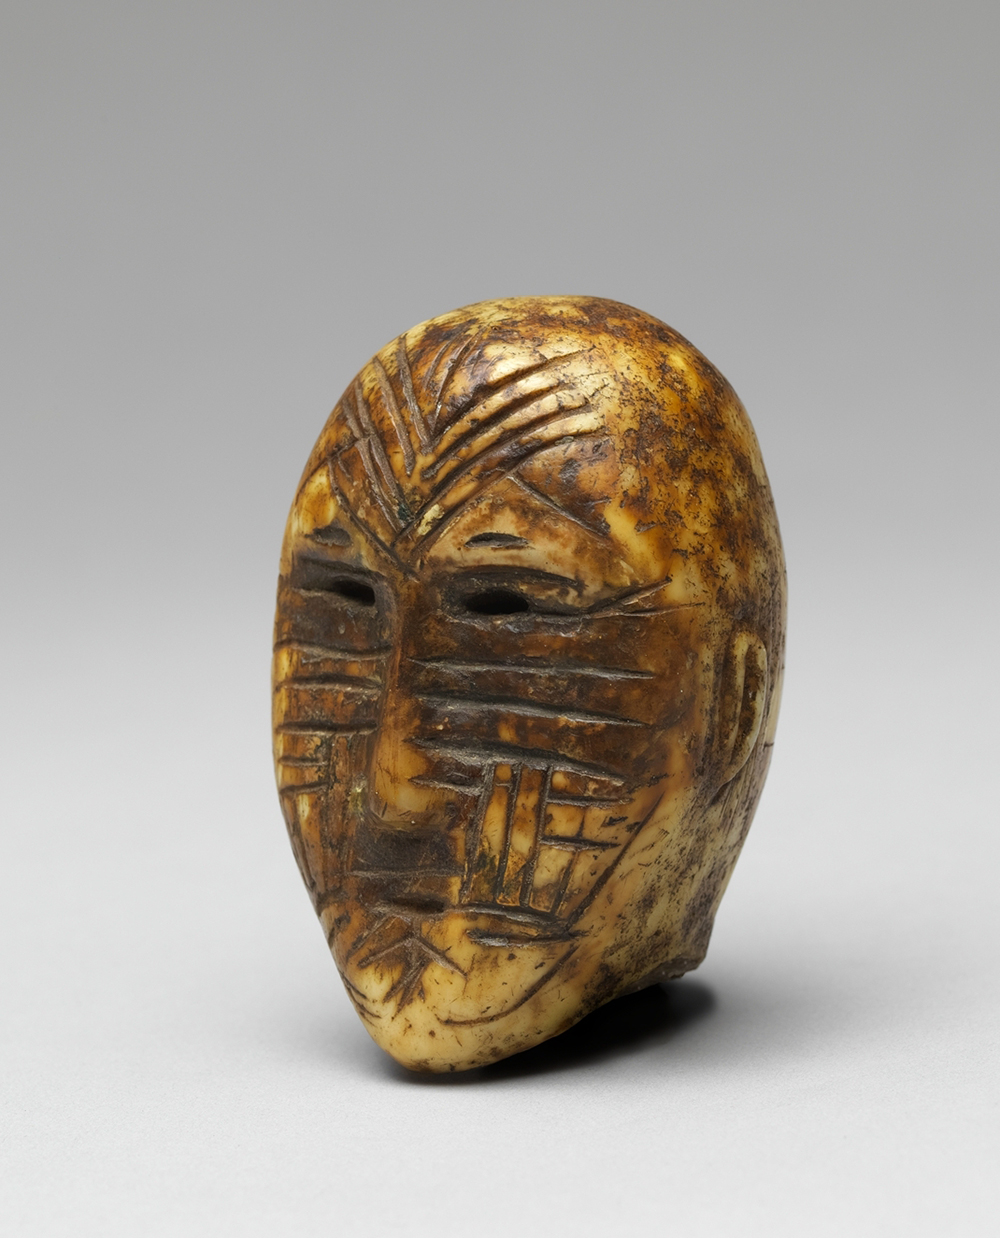 Head, Old Bering Sea, second to fourth century. The Metropolitan Museum of Art, Gift of Dorothy Elowitch, 1991.